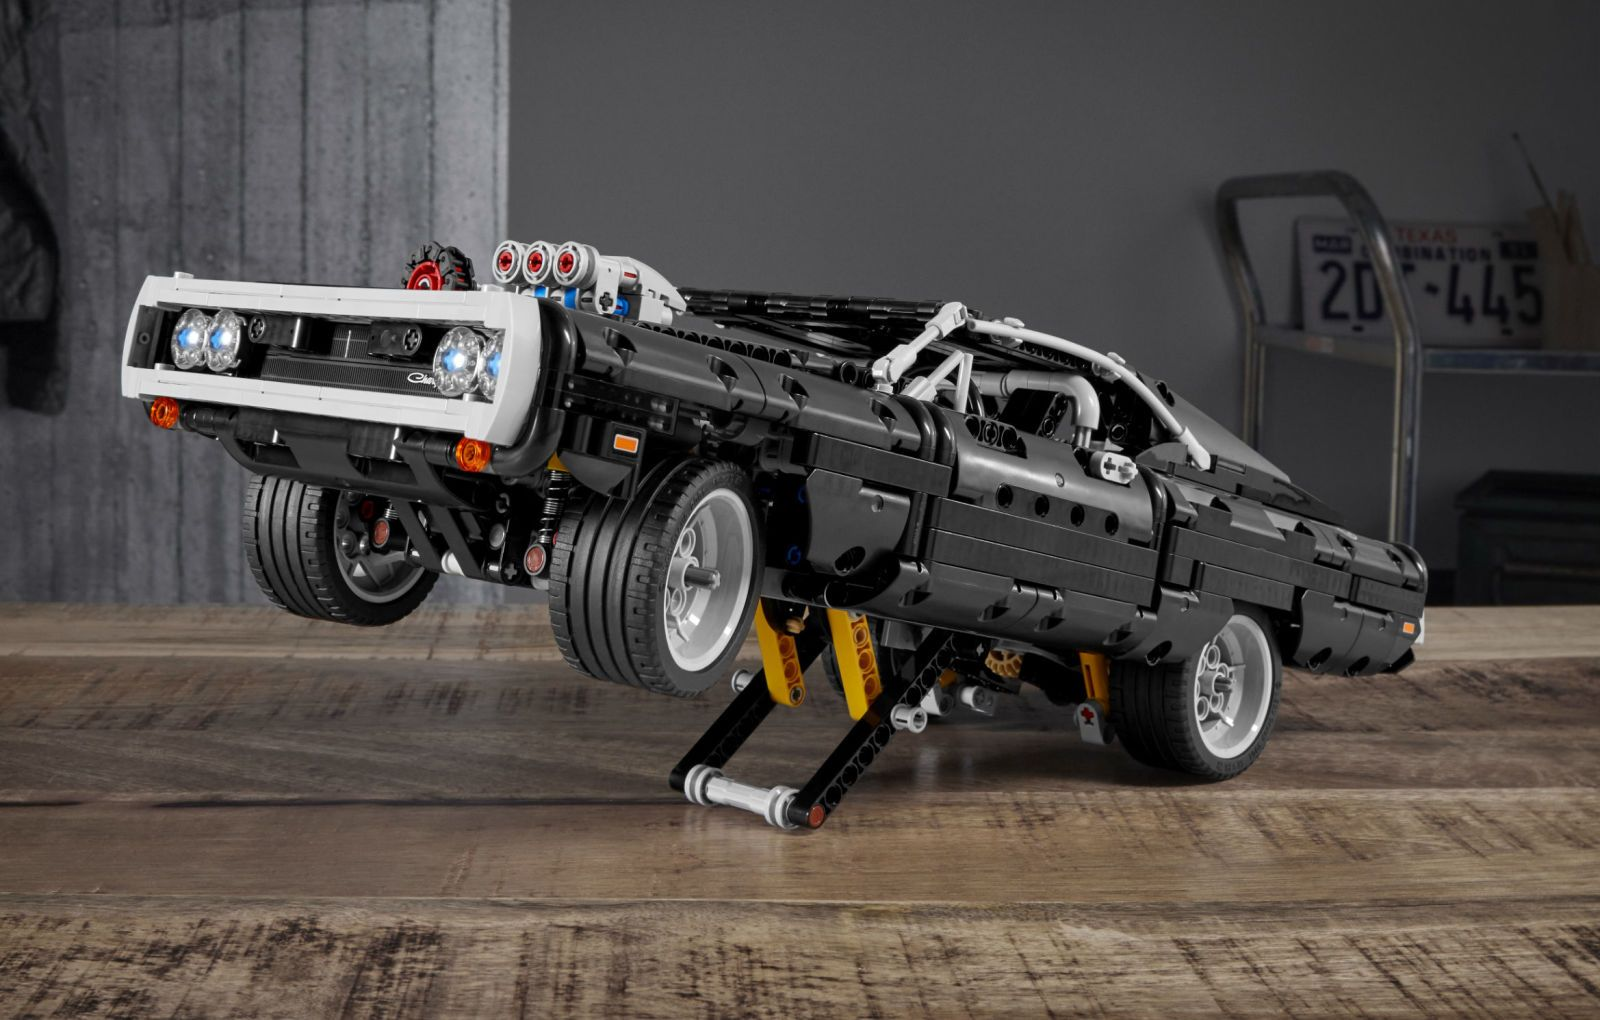 There's Now a Lego Version of Dom's Charger From Fast & Furious